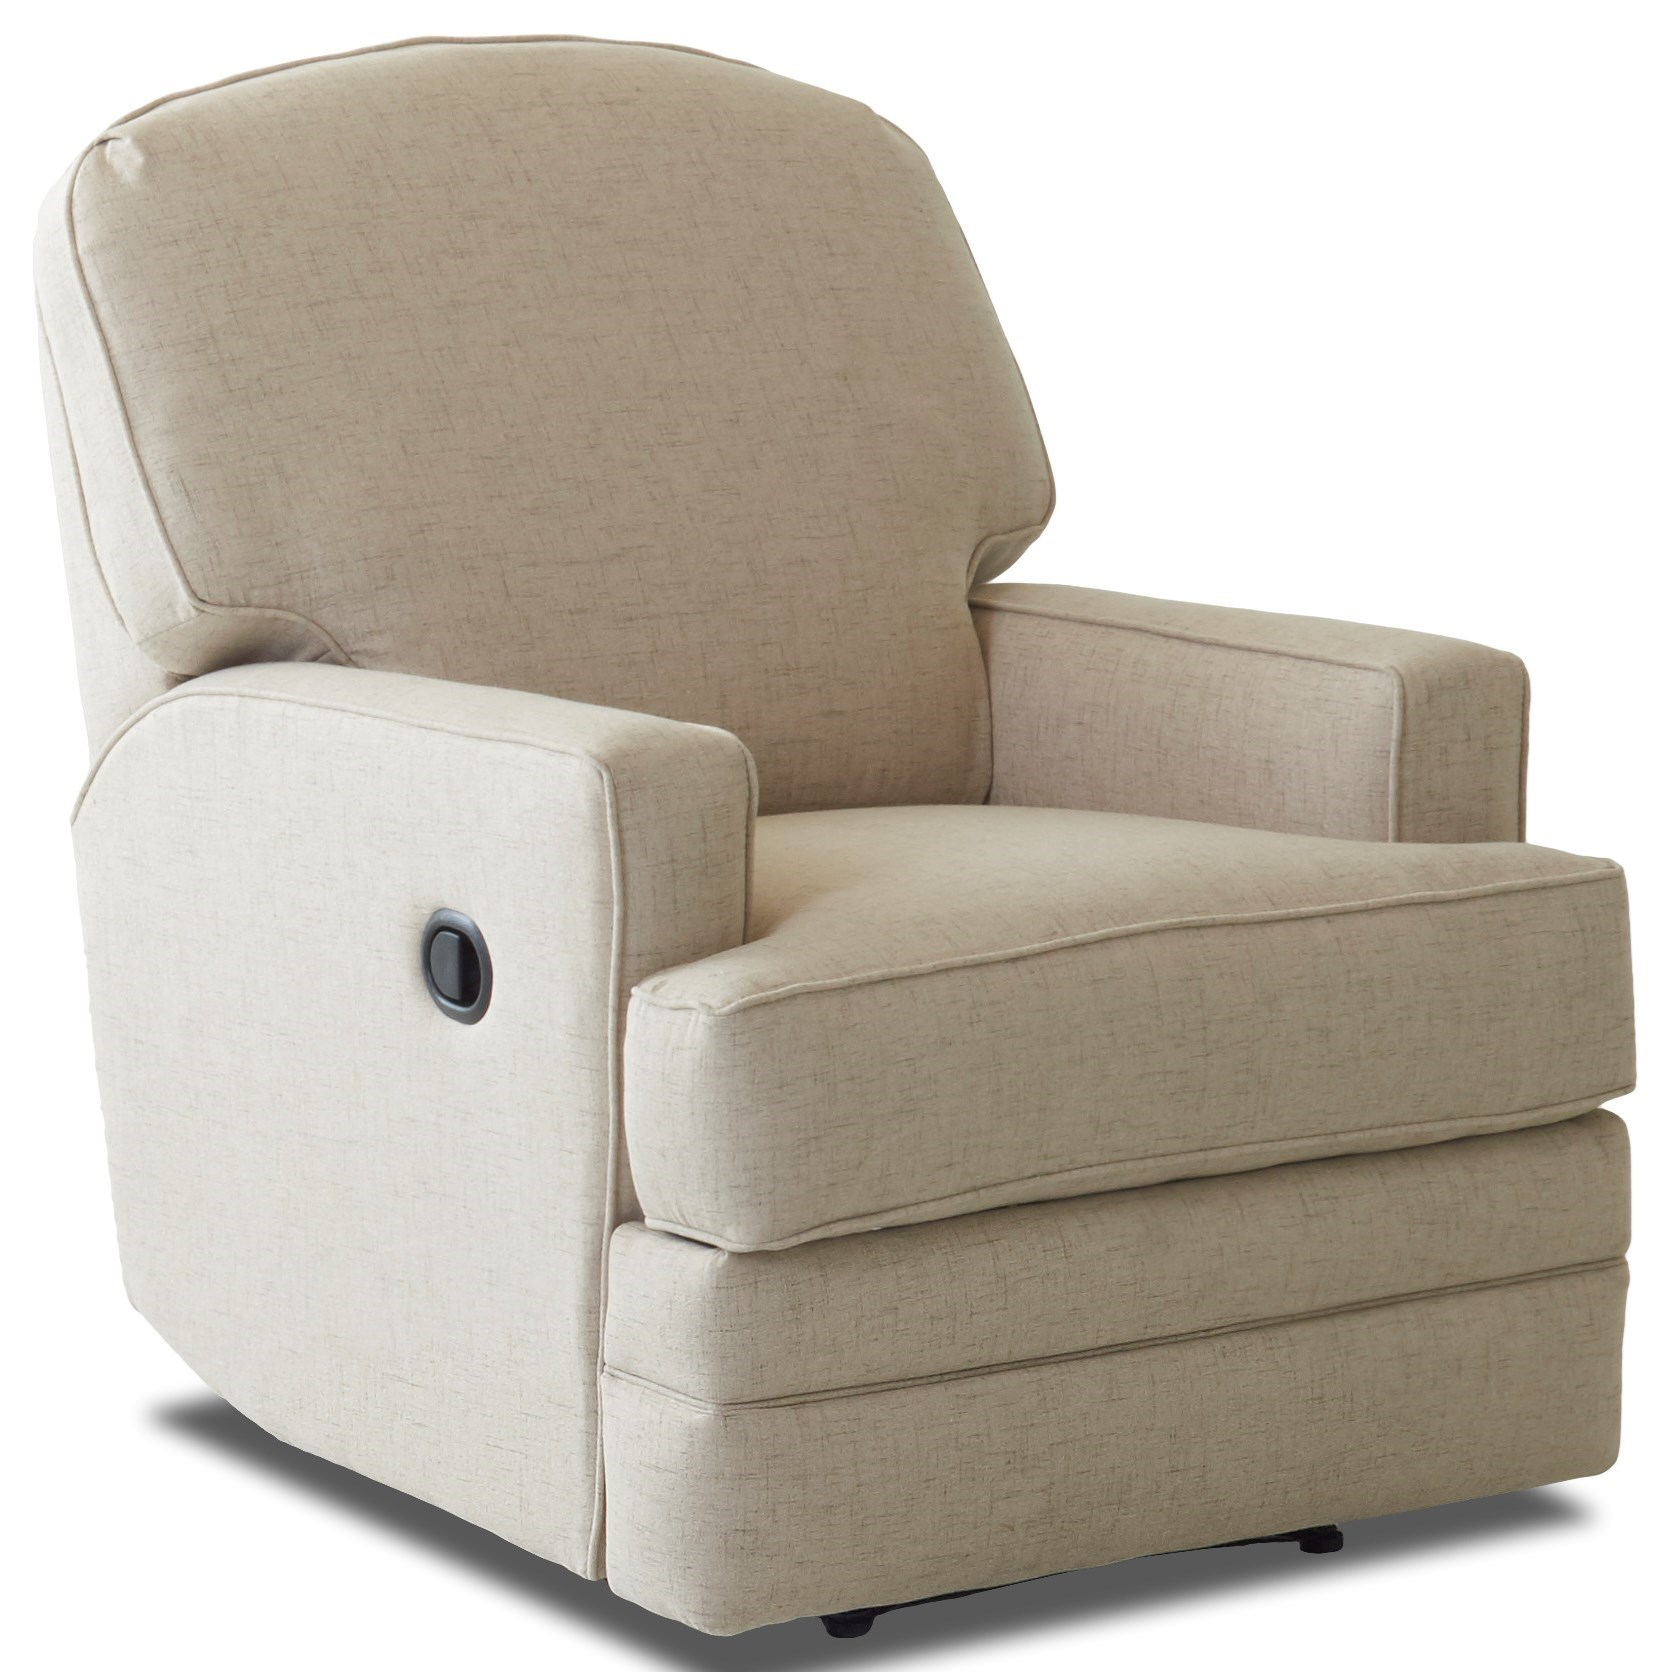 Klaussner Chapman Casual Gliding Reclining Rocking Chair